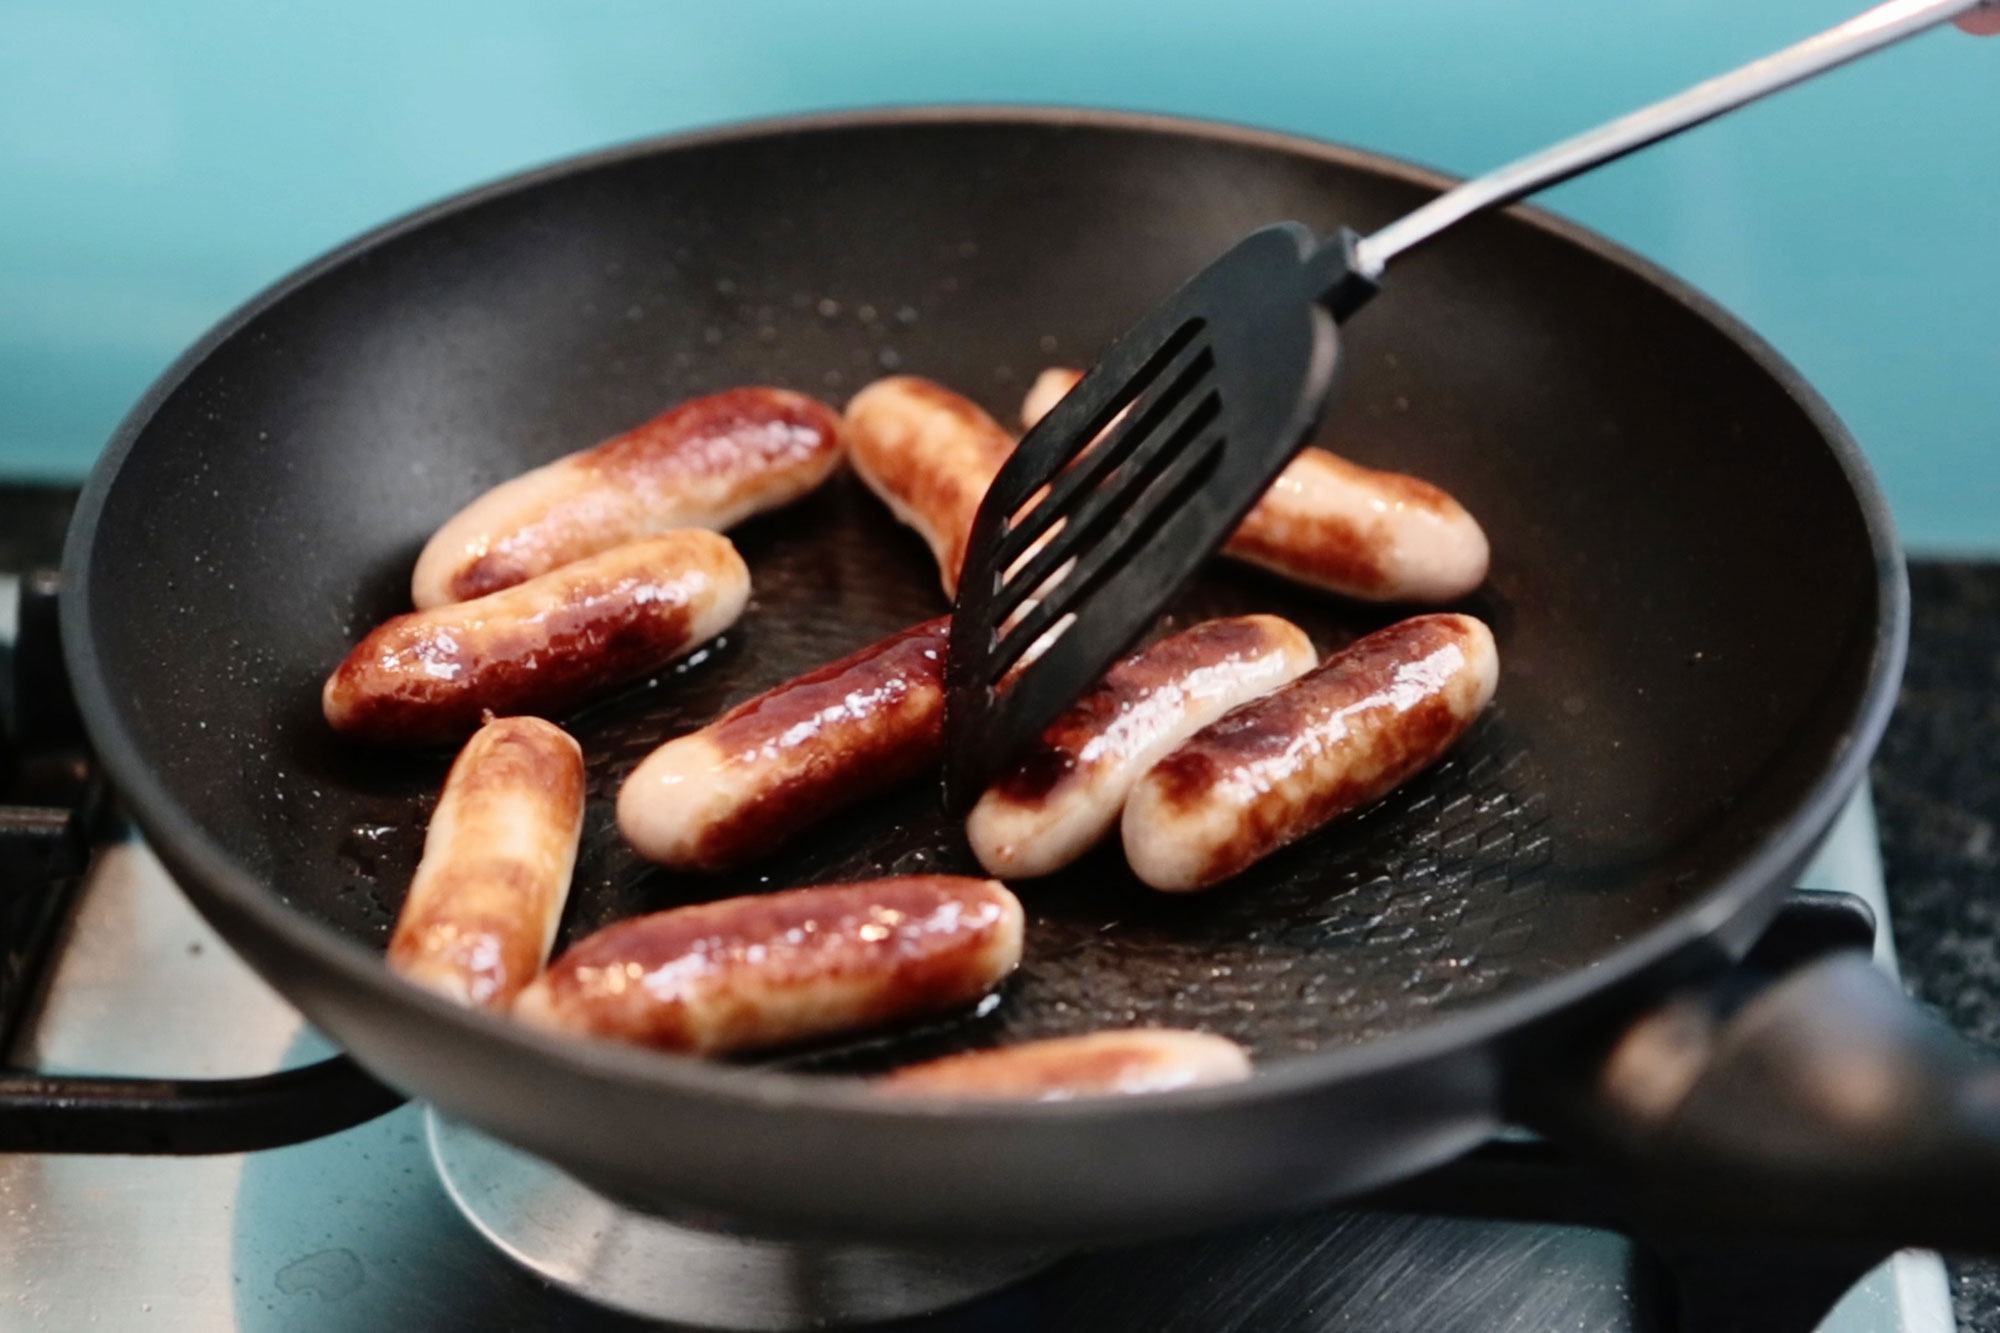 Sausages sizzling in non-stick pan while being stirred